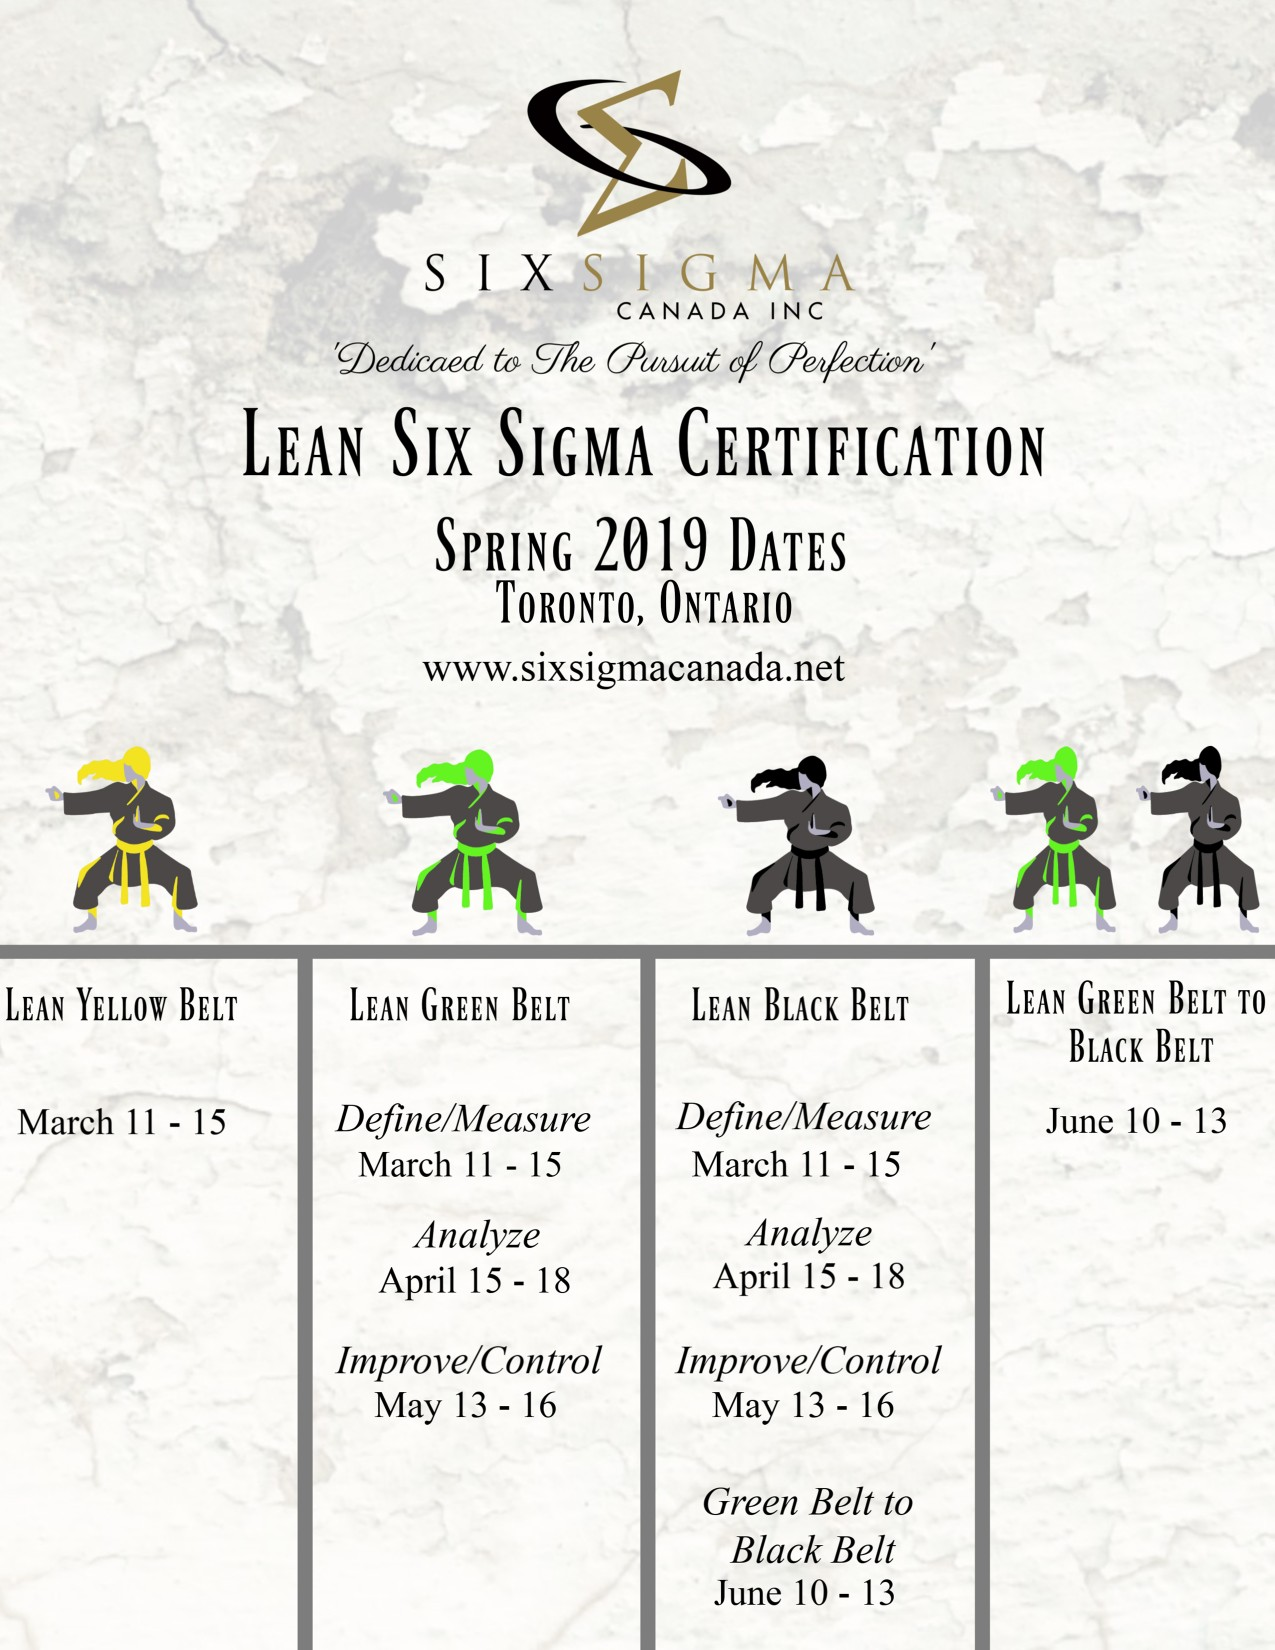 Six Sigma Canada Advertisement